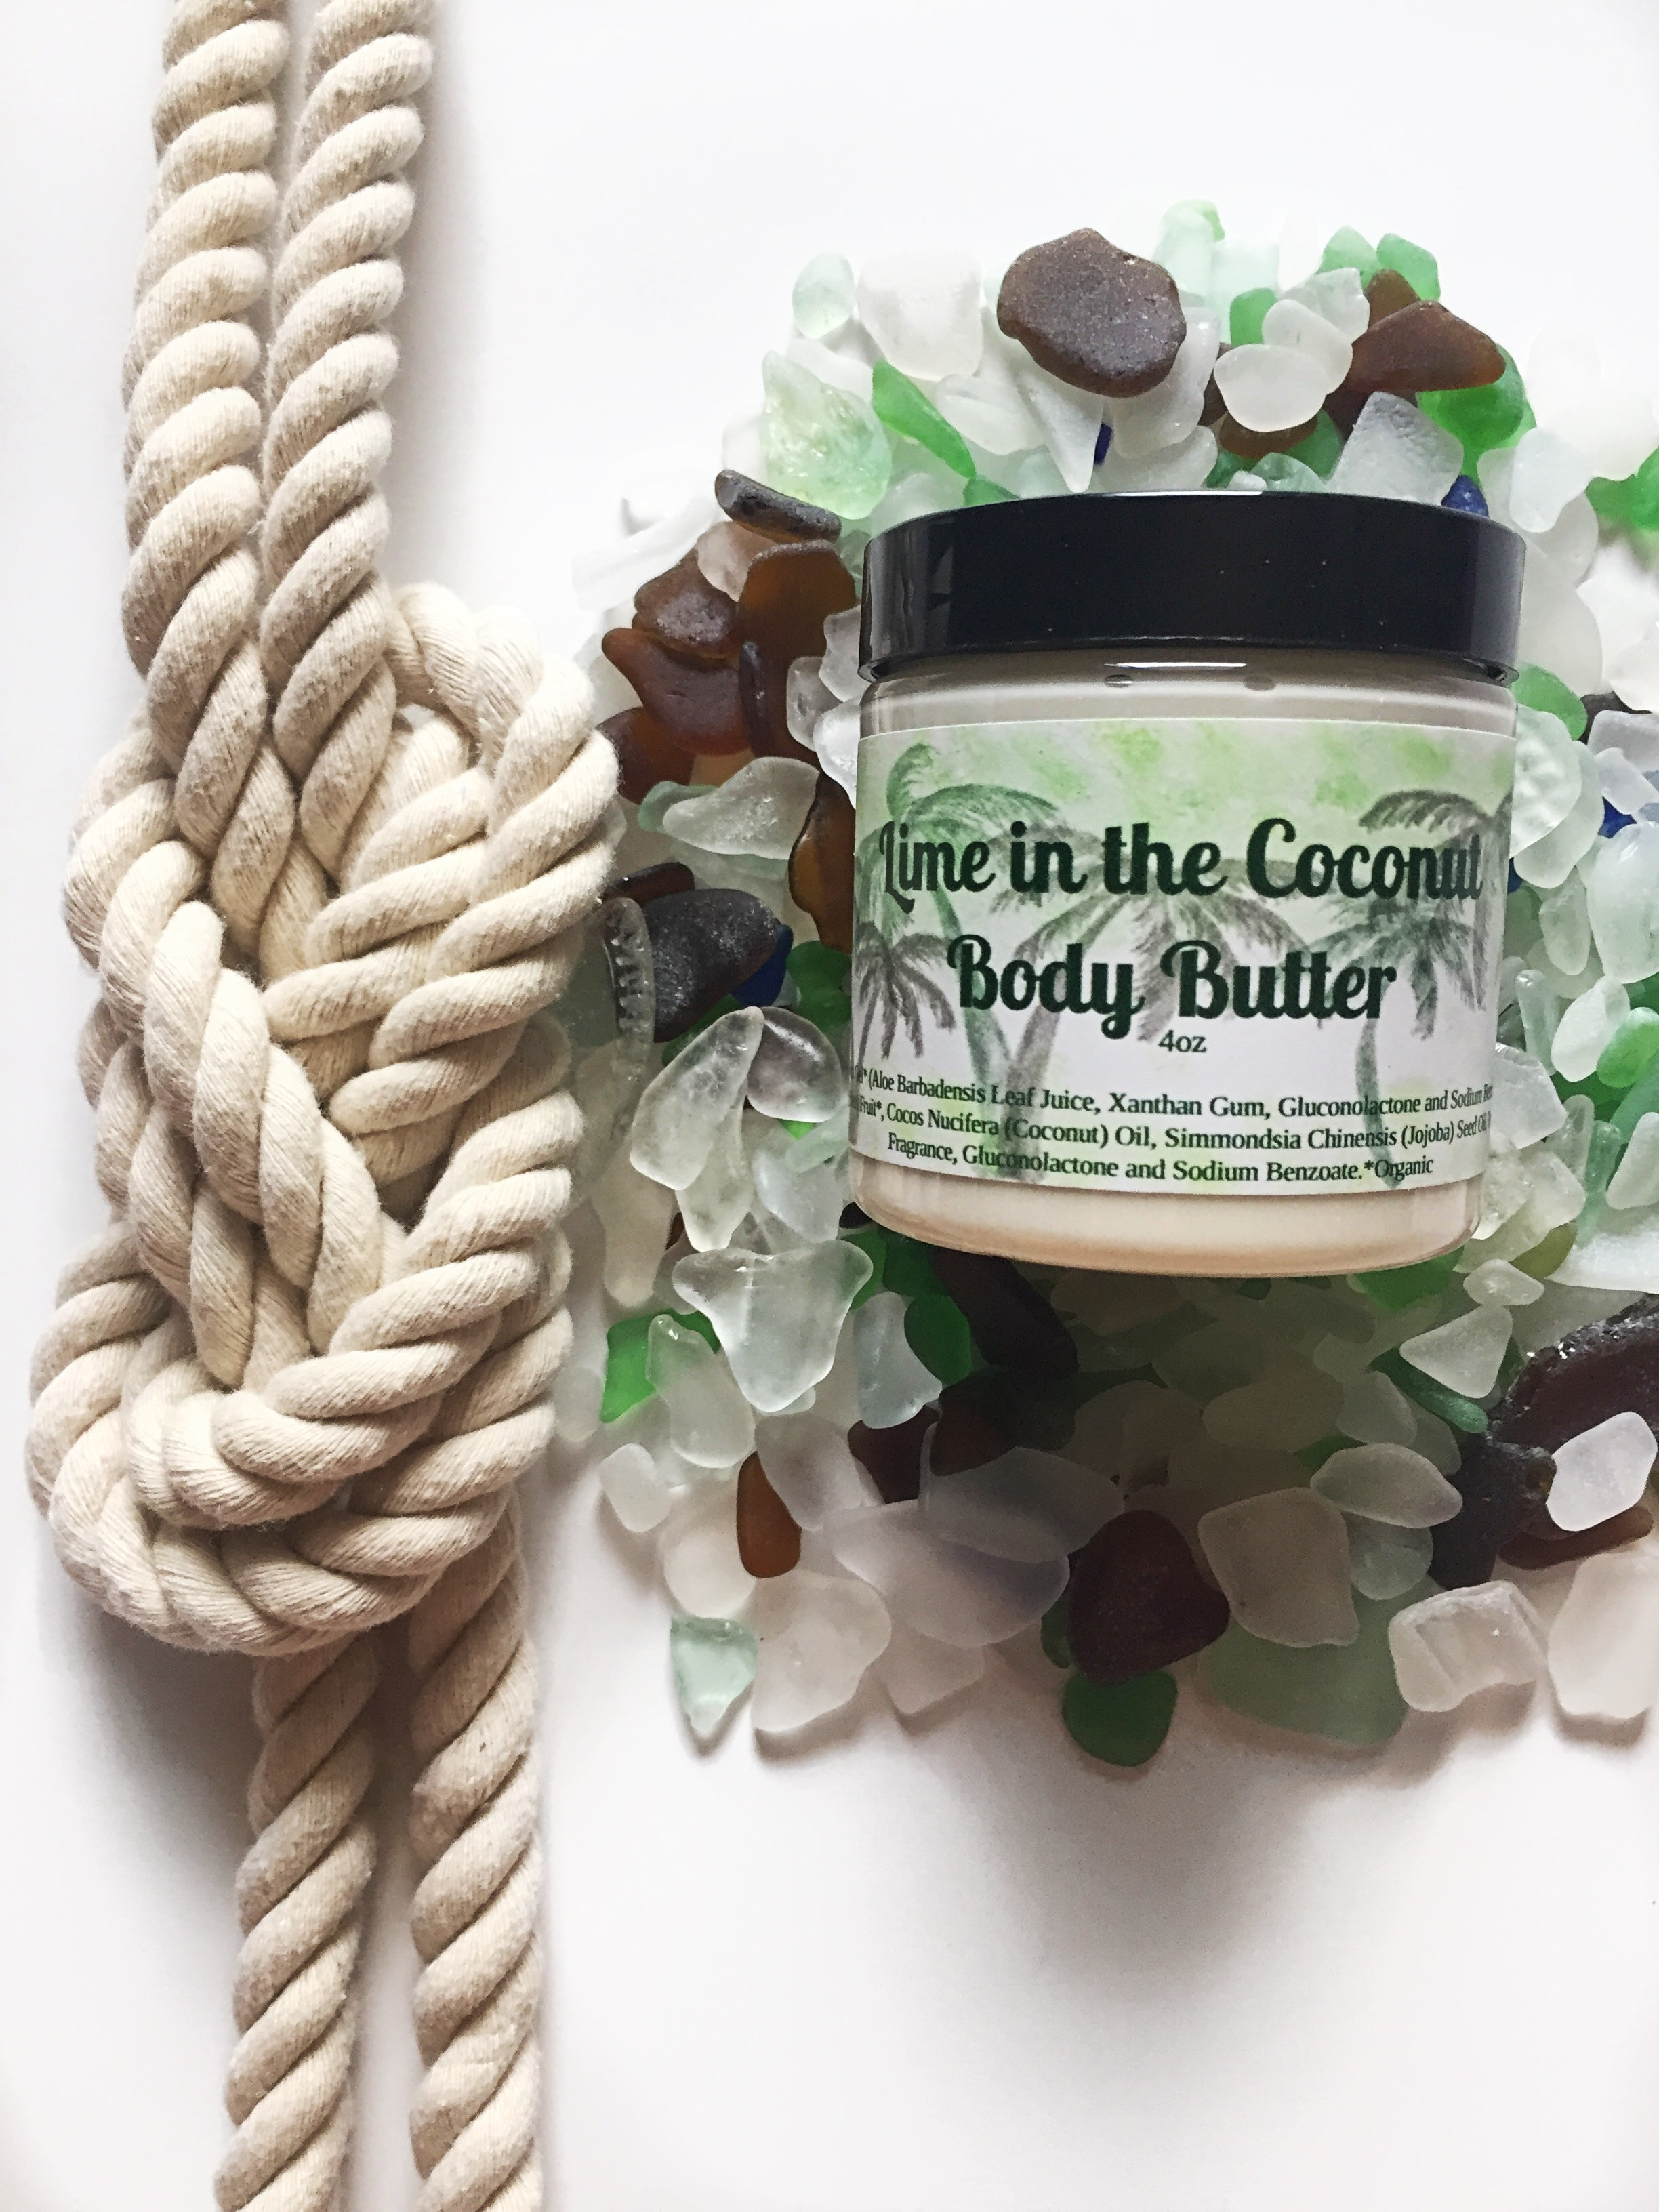 Lime in the Coconut Body Butter